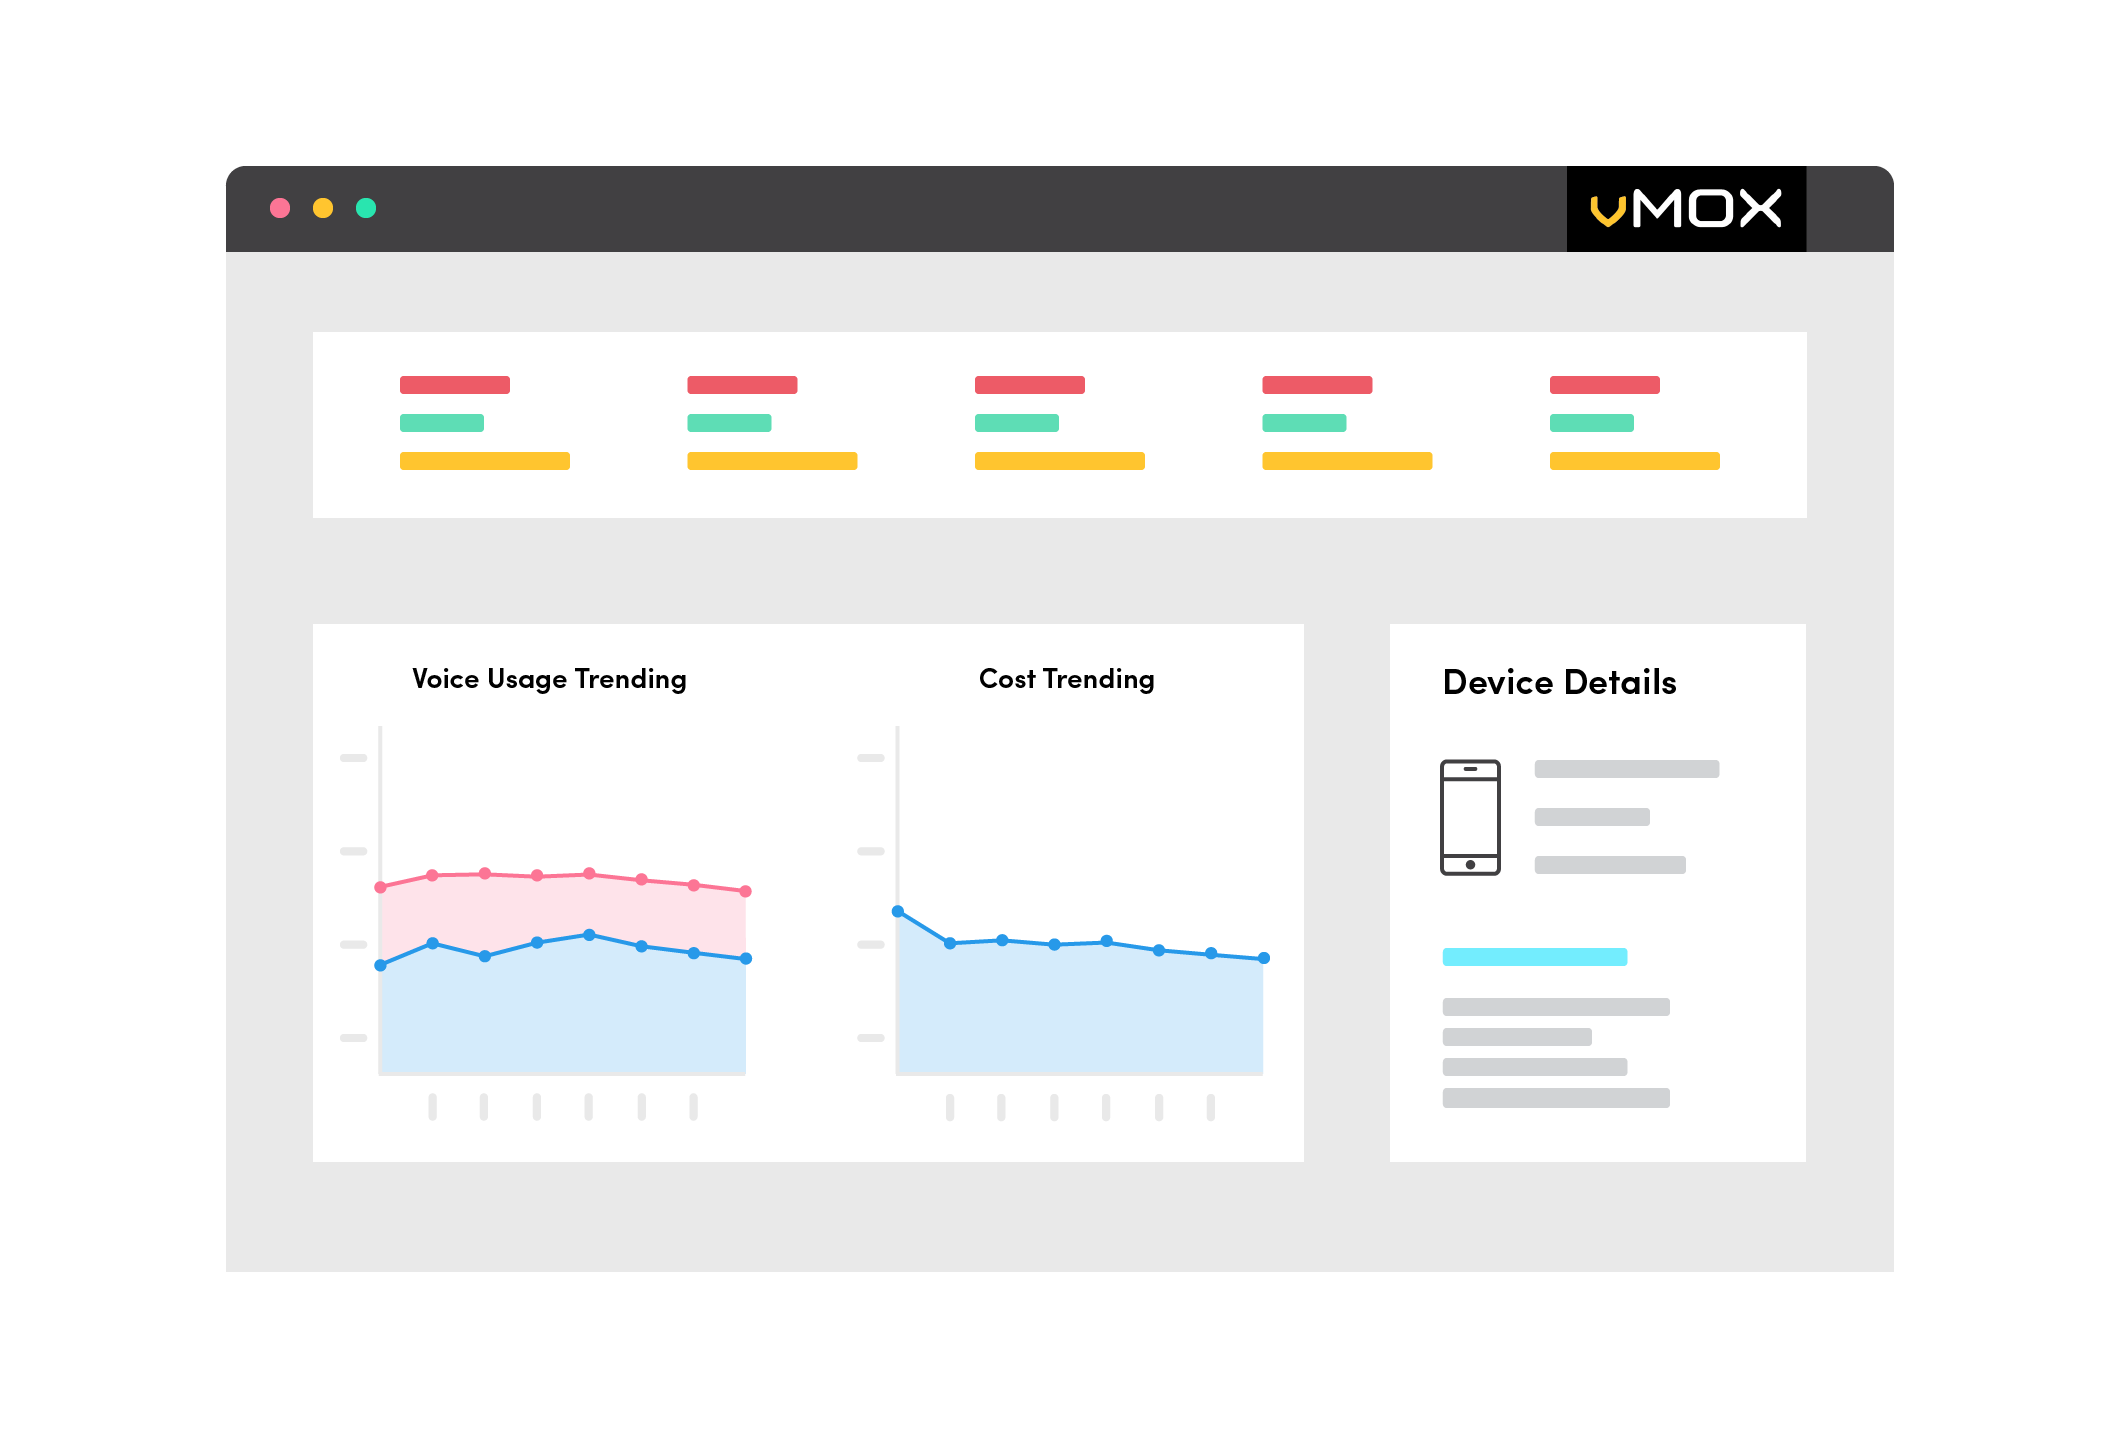 Hold Employees Accountable - Granular spend and usage reporting down to the individual user level helps control excessive use and drive accountability. Hierarchical reports give managers visibility into the activity of their team members, and automatic alerting sends notifications when usage thresholds are exceeded.